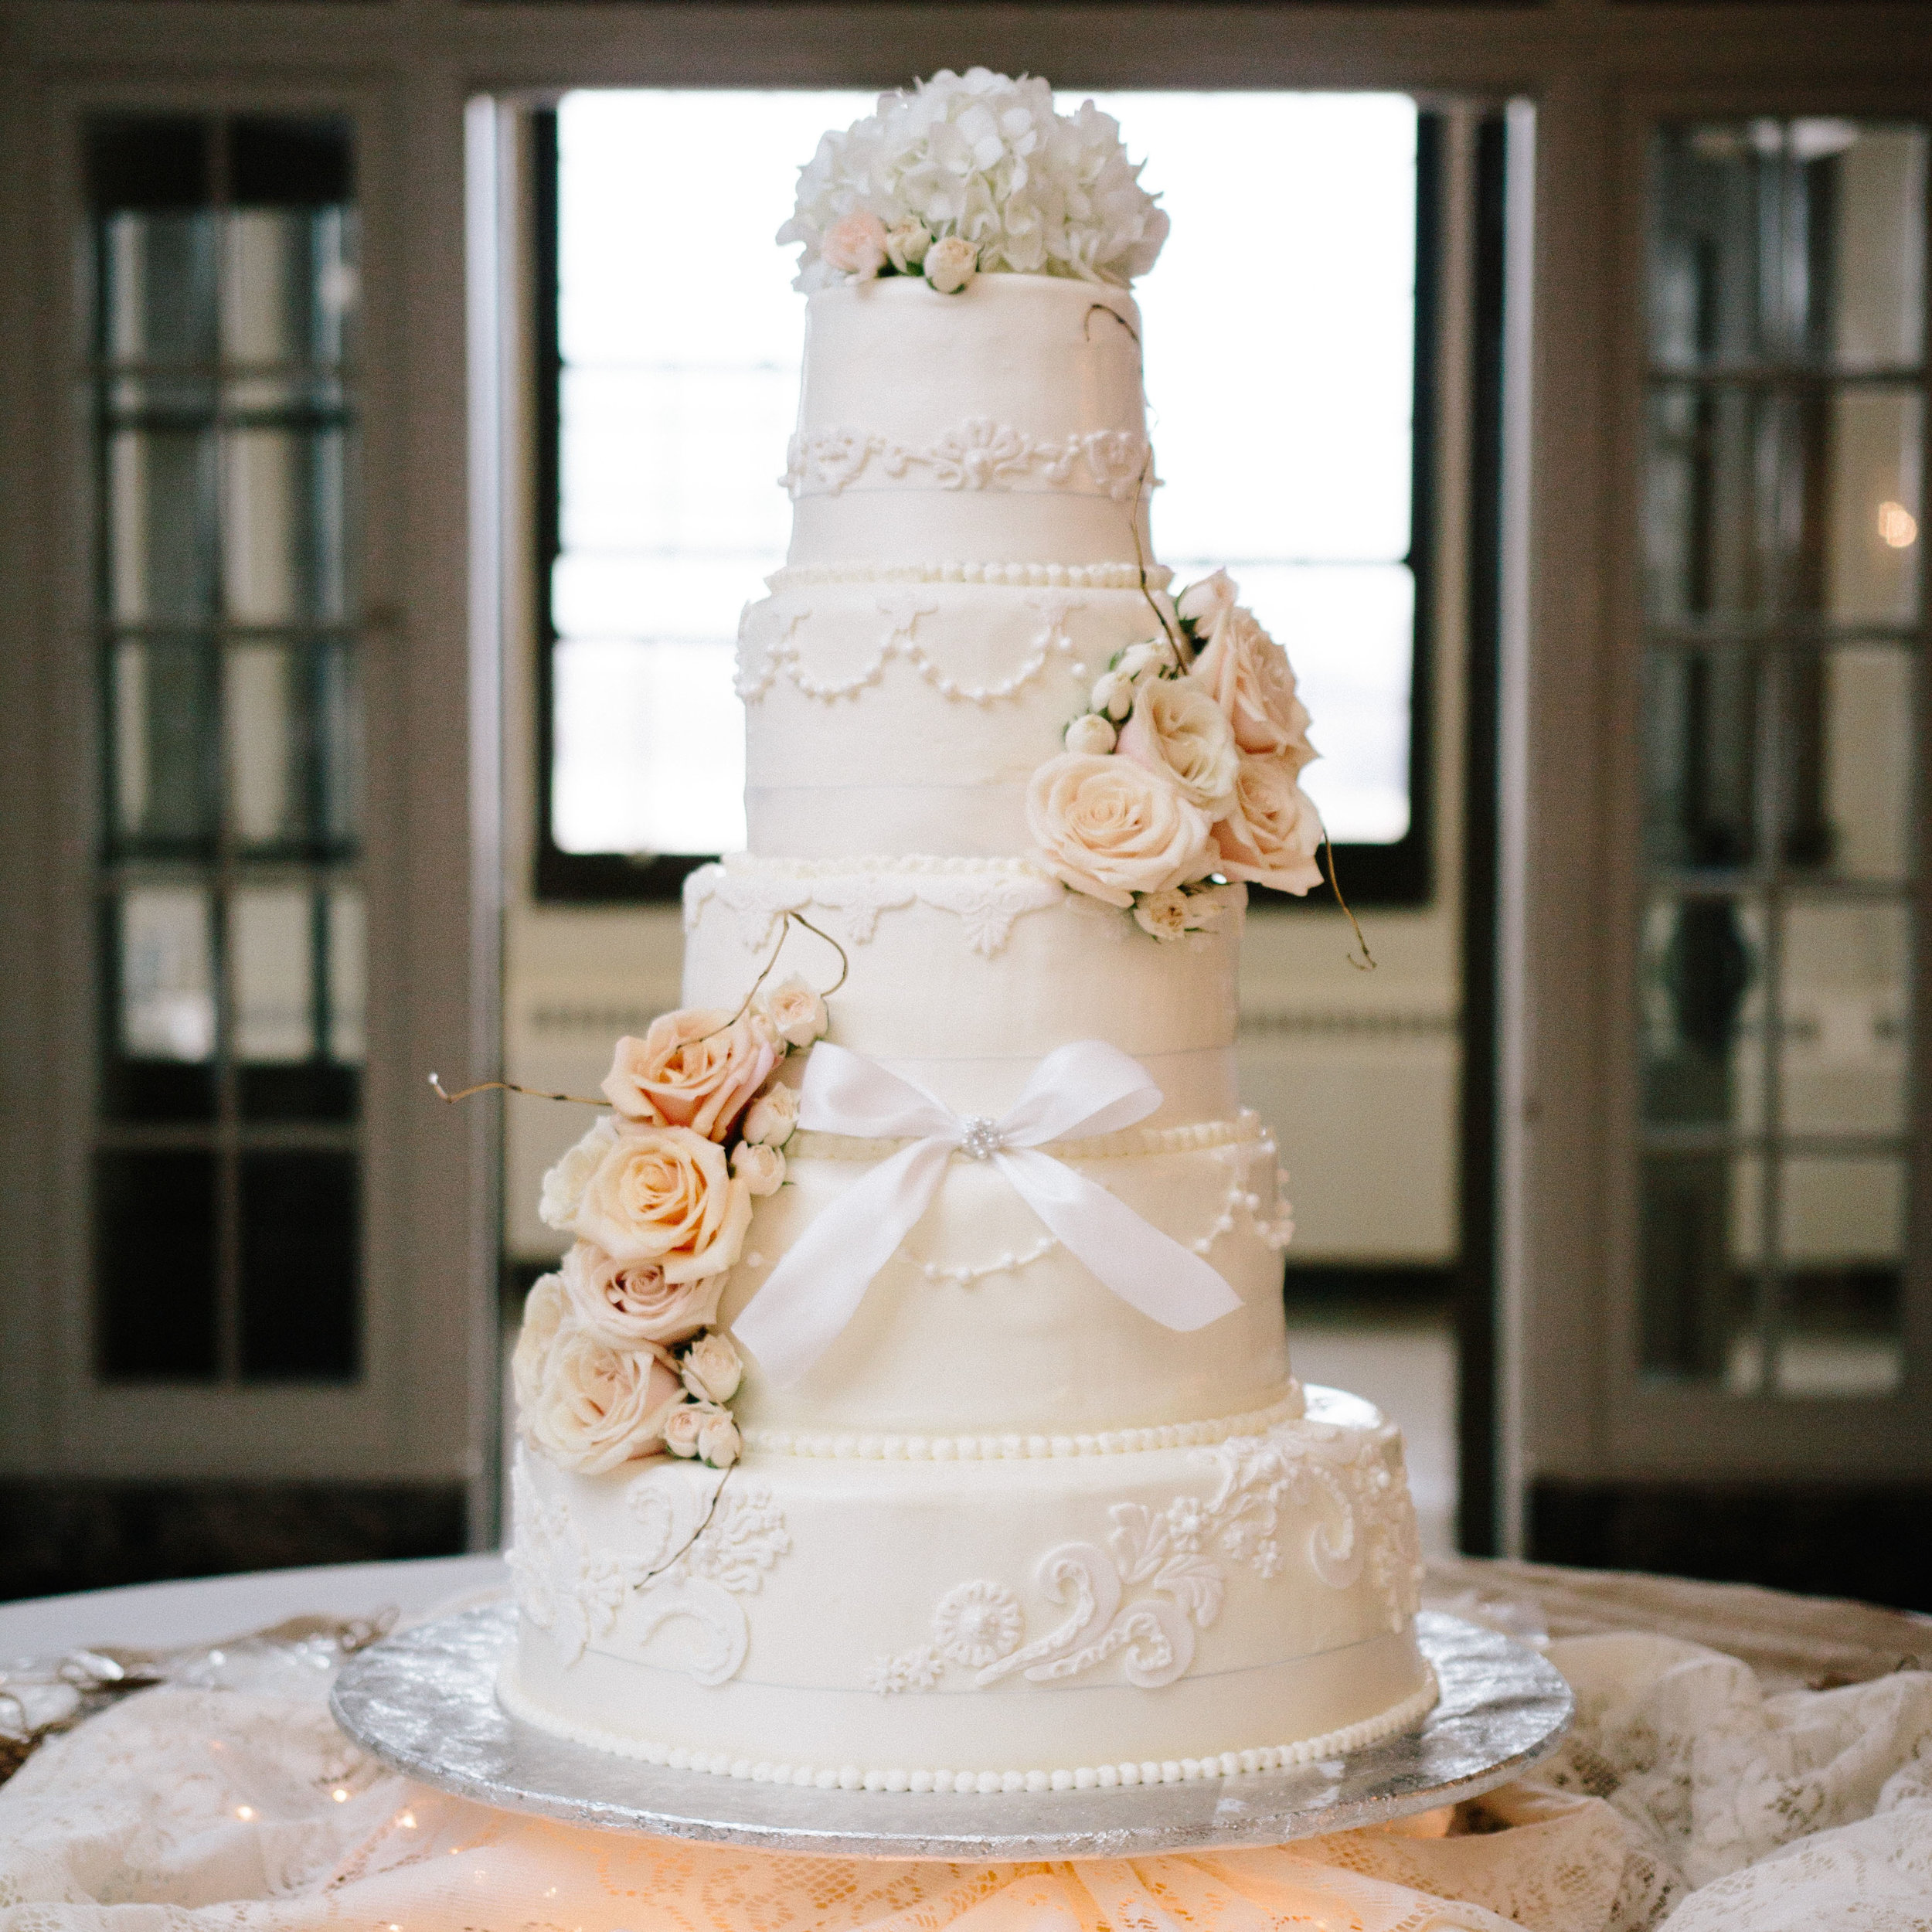 WEDDING | Packages begin at $1,300 | 6 hours